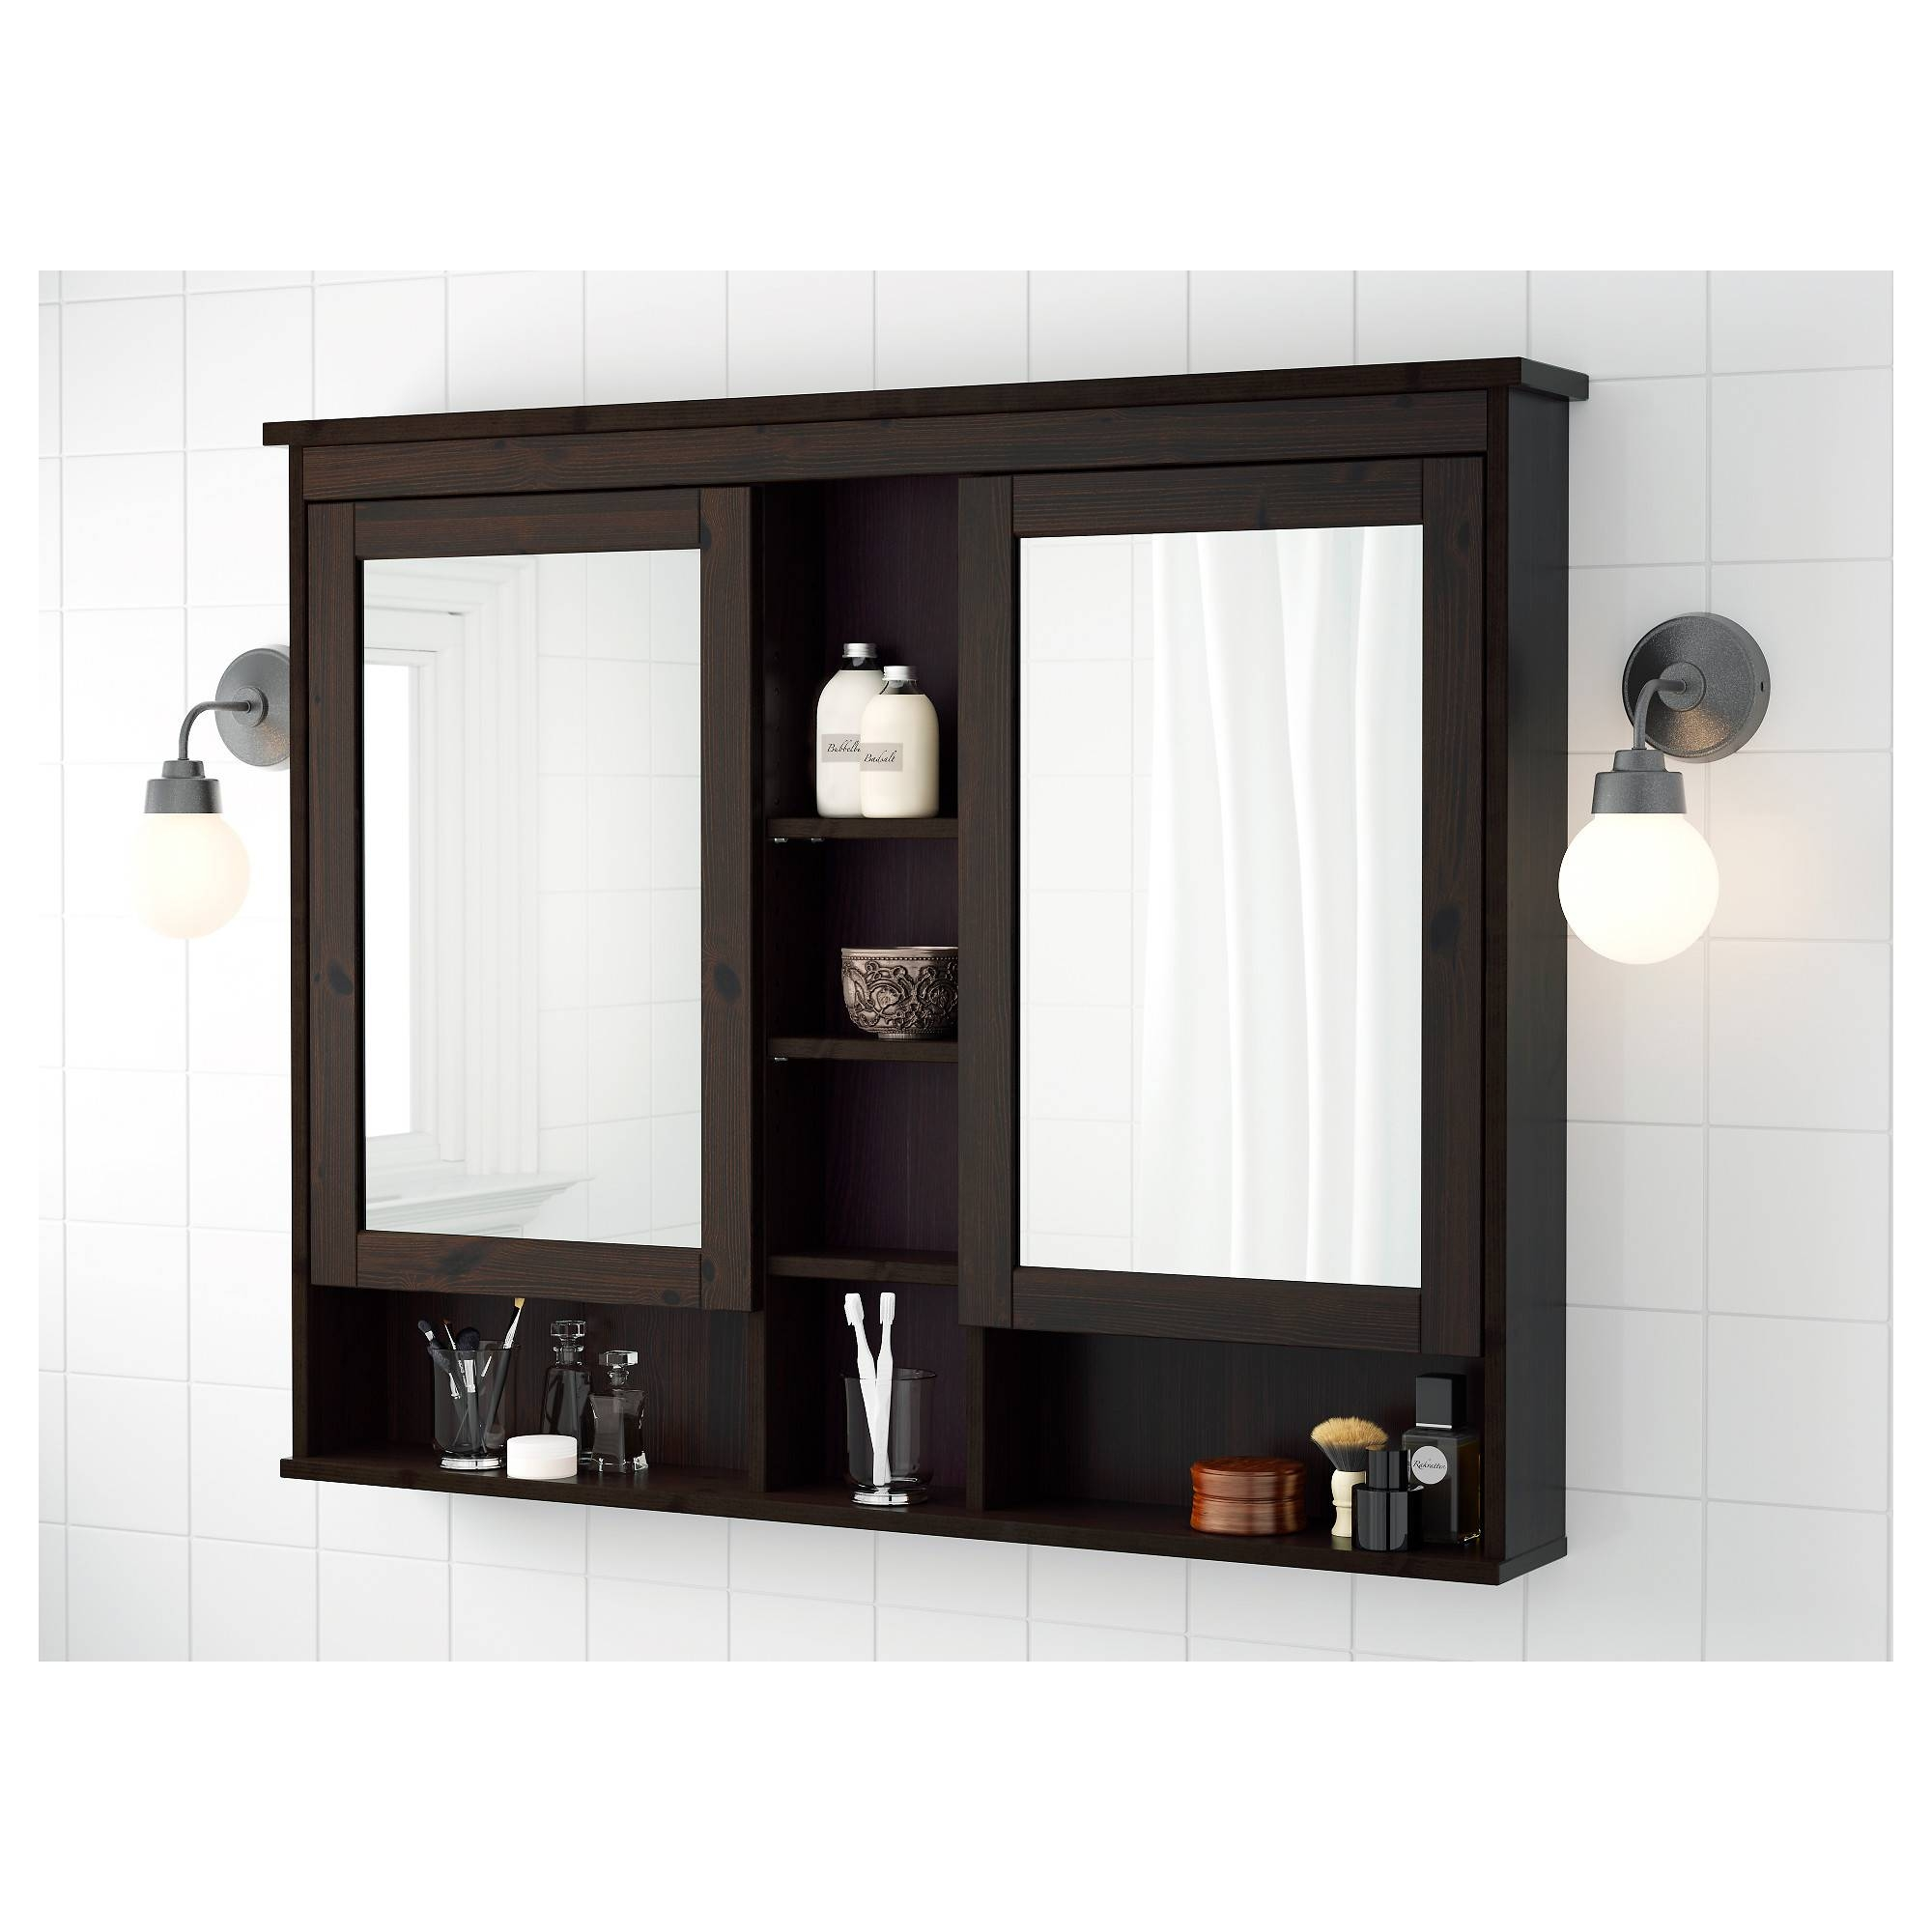 Hemnes Mirror Cabinet With 2 Doors - Black-Brown Stain, 32 5/8X6 1 inside Black Cabinet Mirrors (Image 11 of 15)